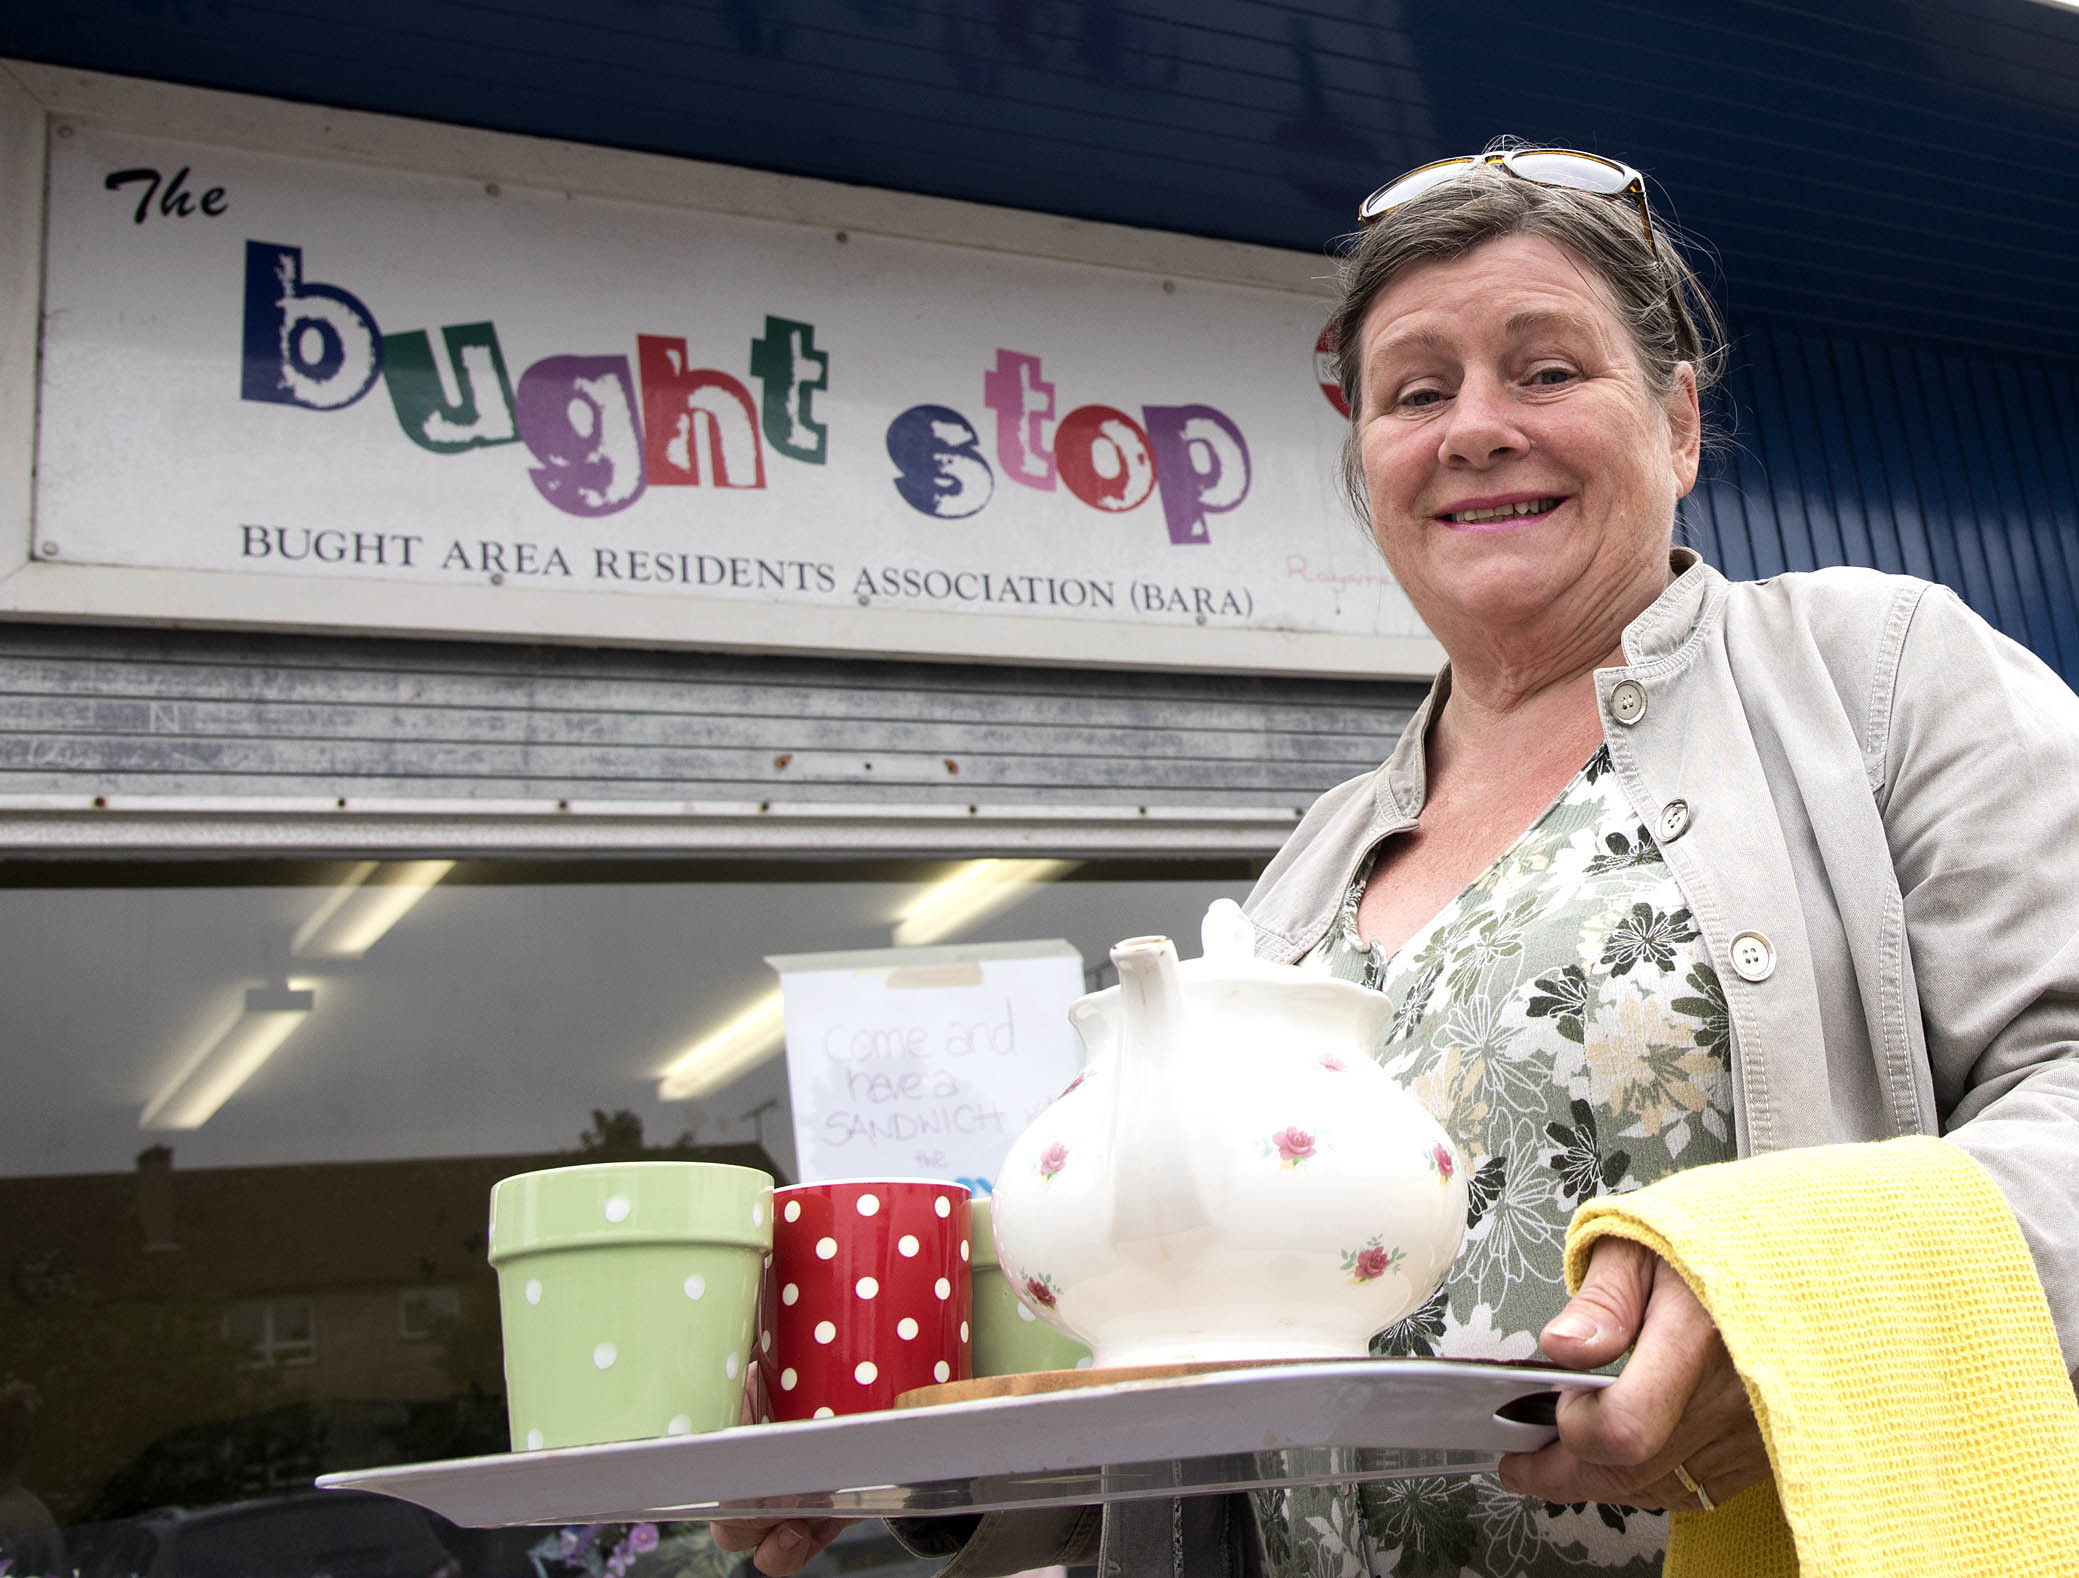 Kate MacLean, organiser of the event, at the Bught Stop drop in centre.